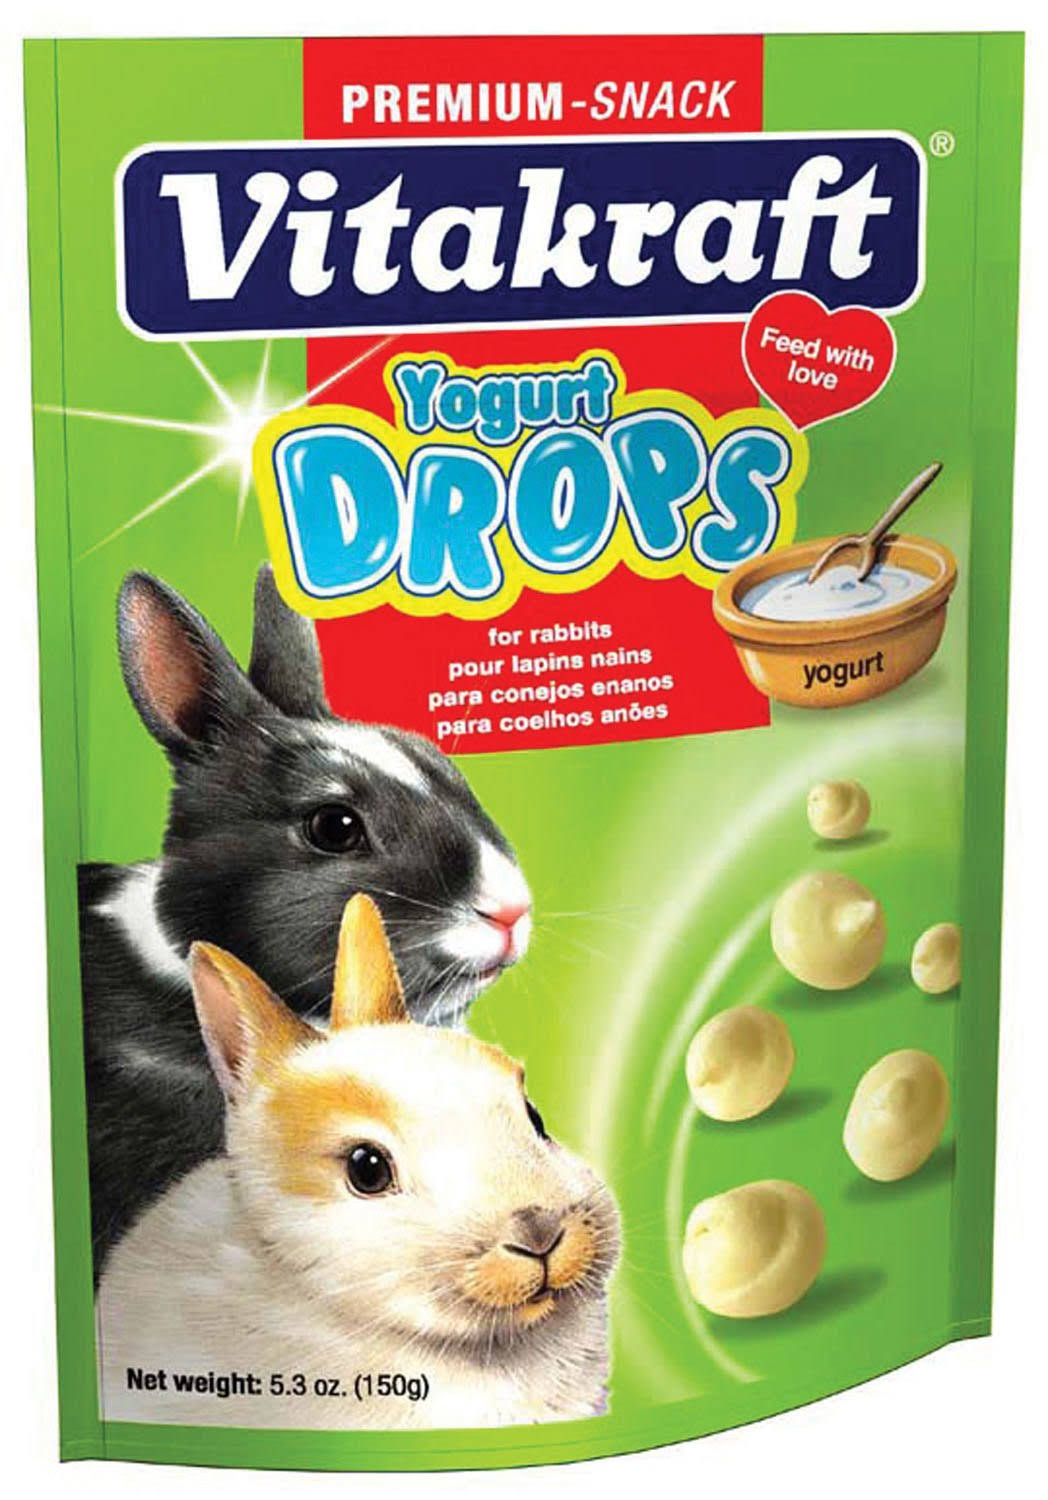 Vitakraft Pet Products Drops - Yogurt